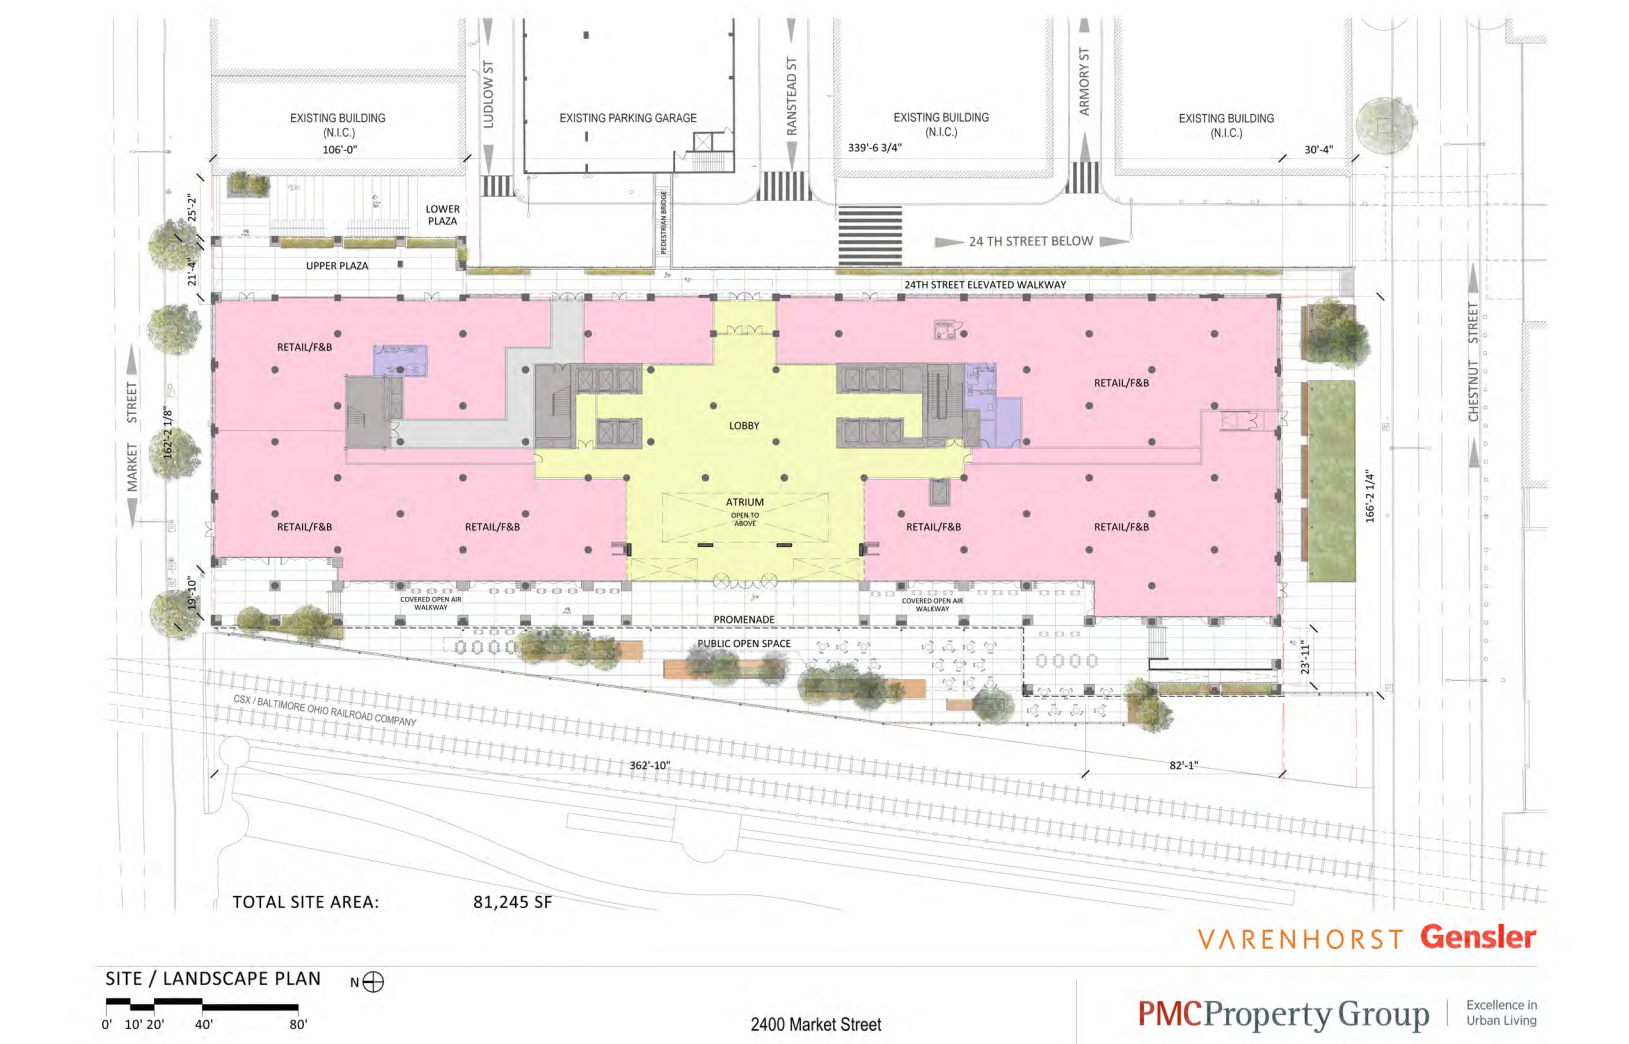 2400 Market: Site plan | CDR presentation, November 2016 - Varenhorst / Gensler